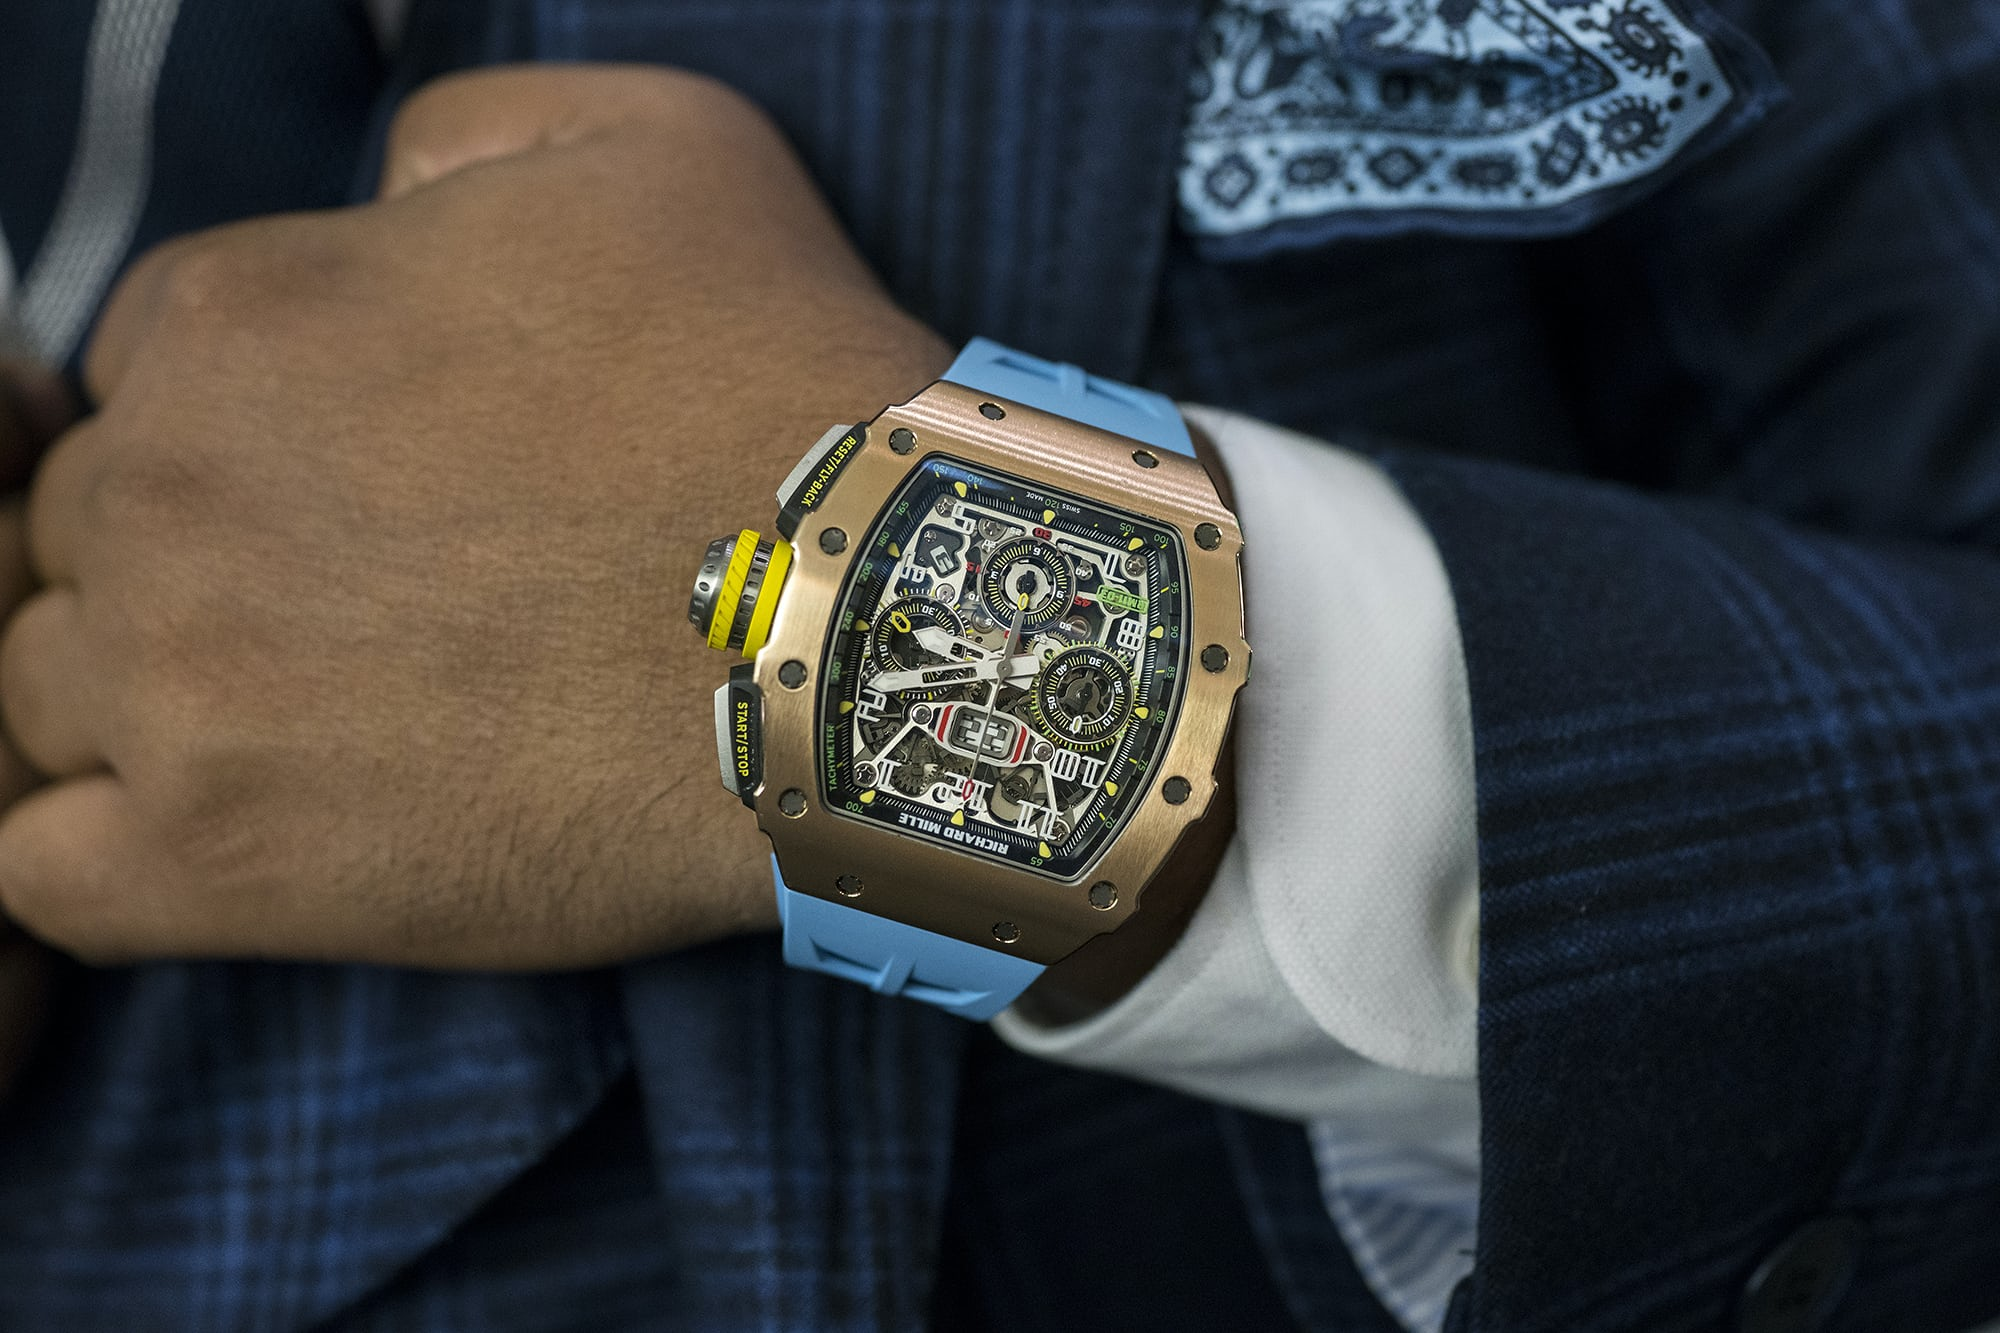 Photo Report: The Fashion And Watches Of Baselworld 2018 Photo Report: The Fashion And Watches Of Baselworld 2018 DSC00753 copy